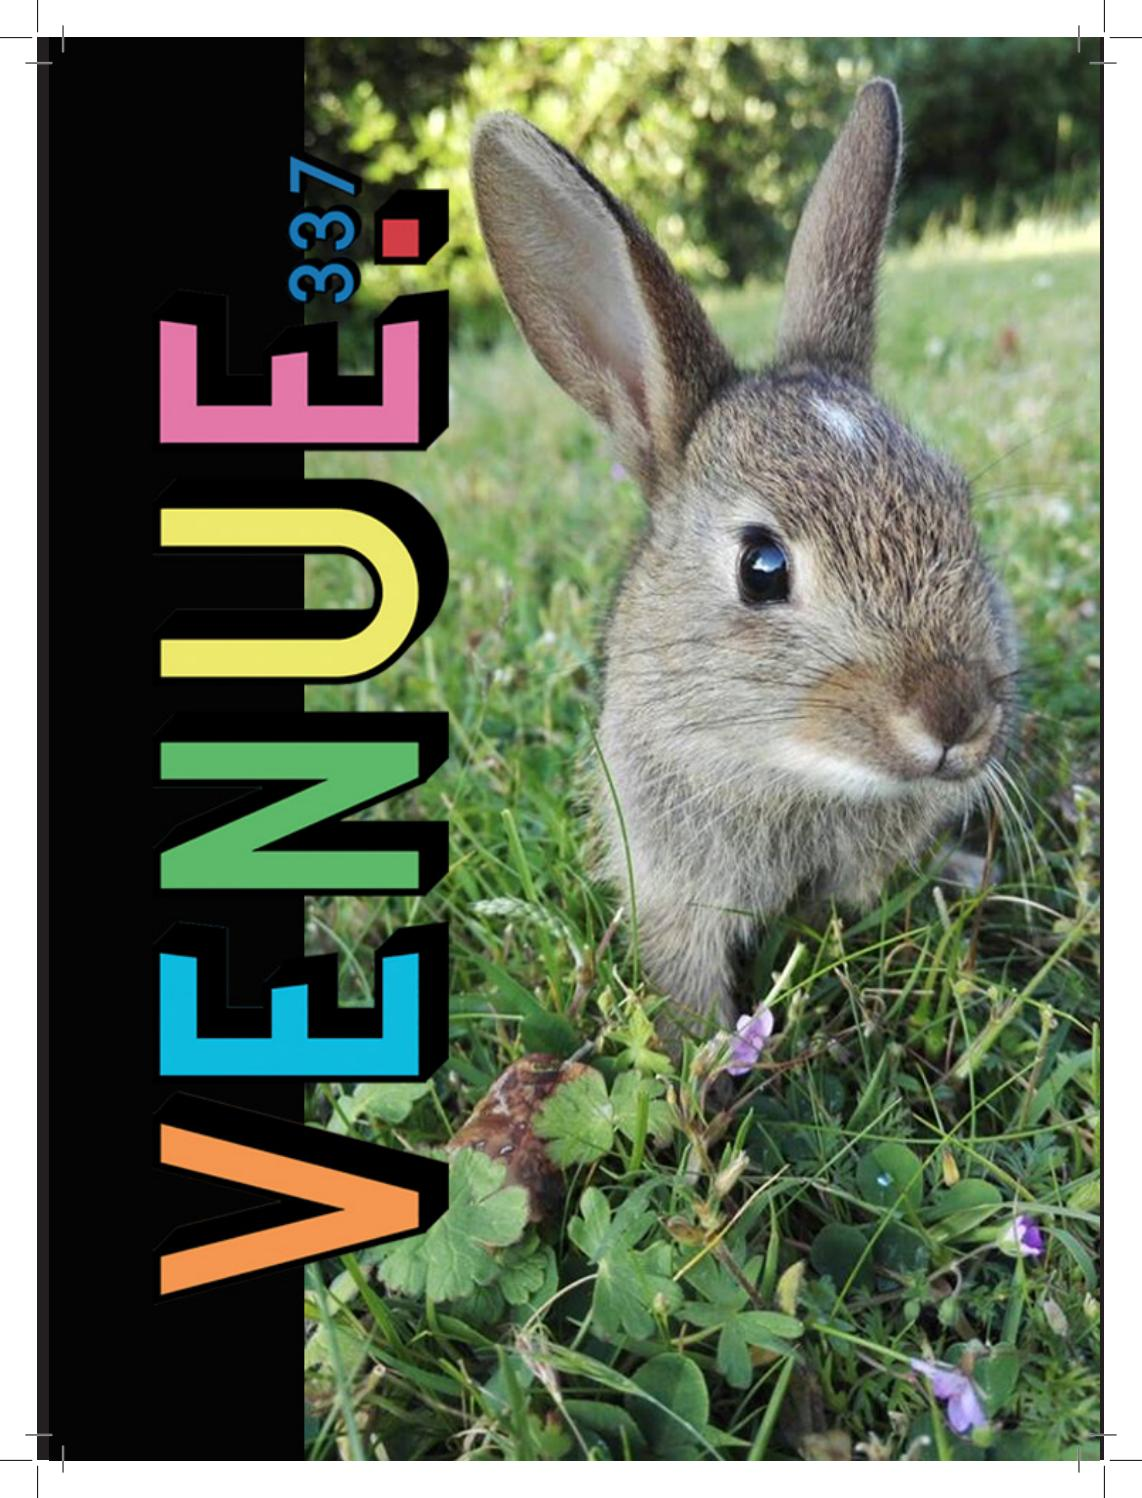 Venue 337 by Concrete - UEA's official student newspaper - issuu